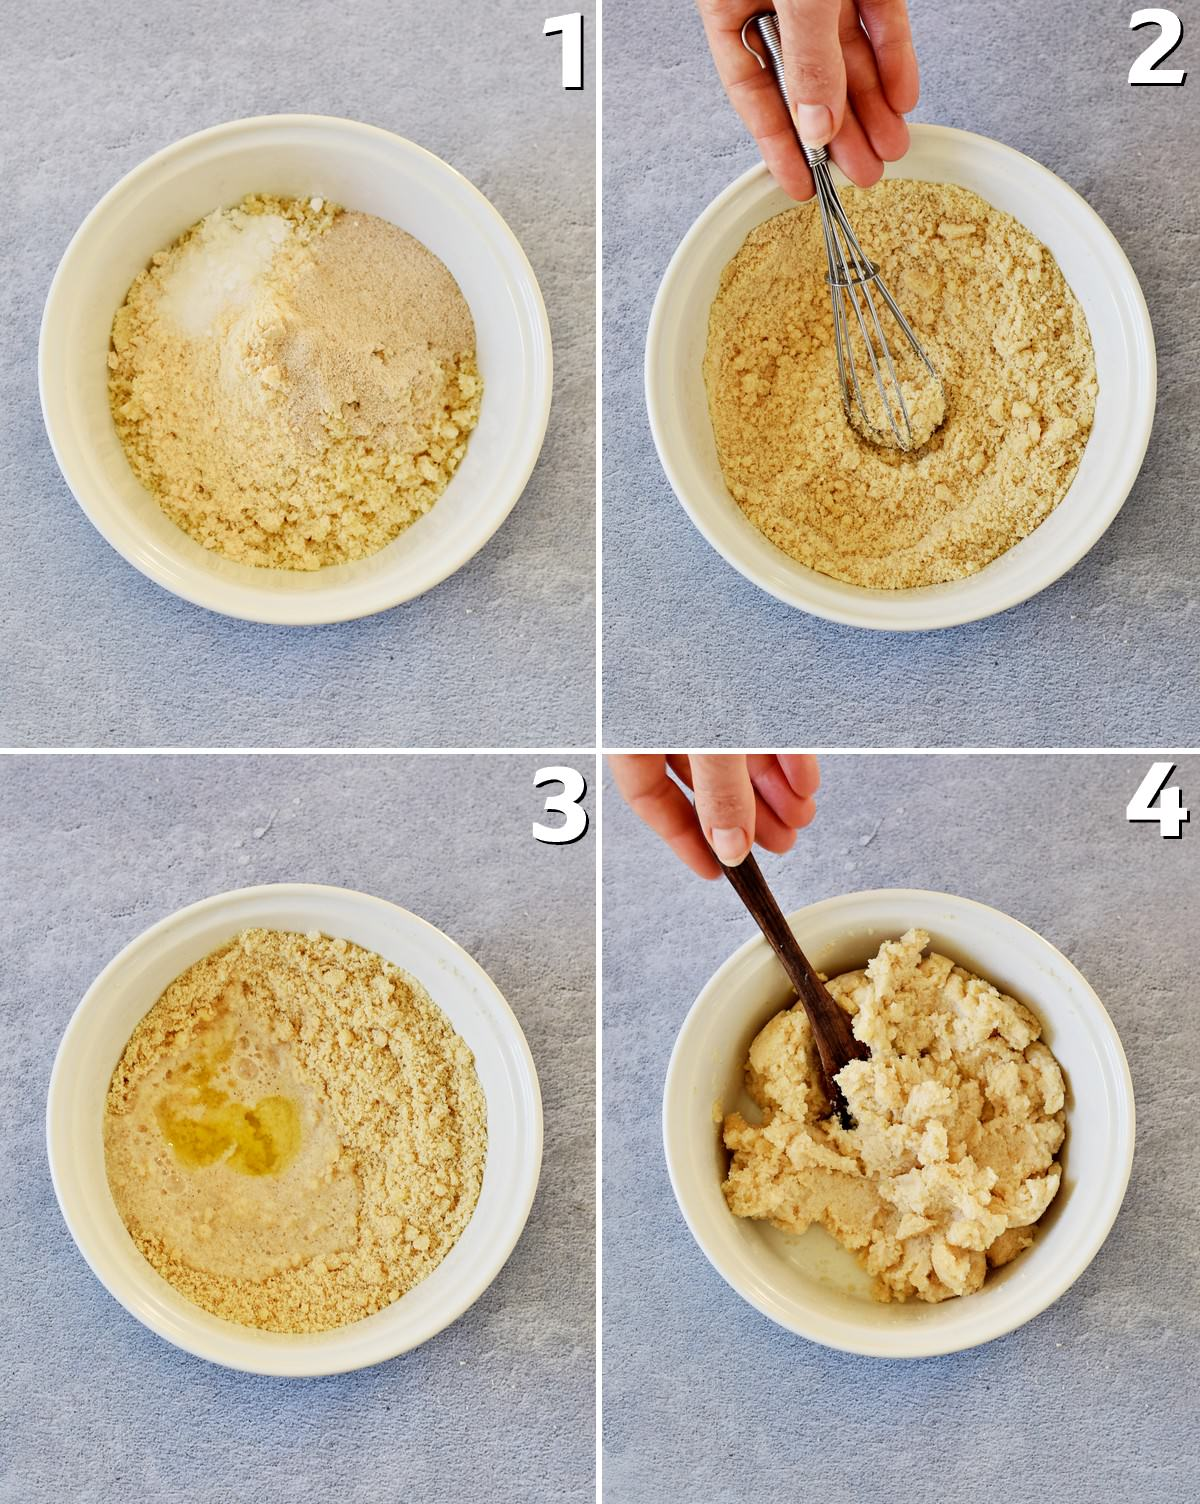 4 step-by-step photos of how to make almond flour tortilla dough